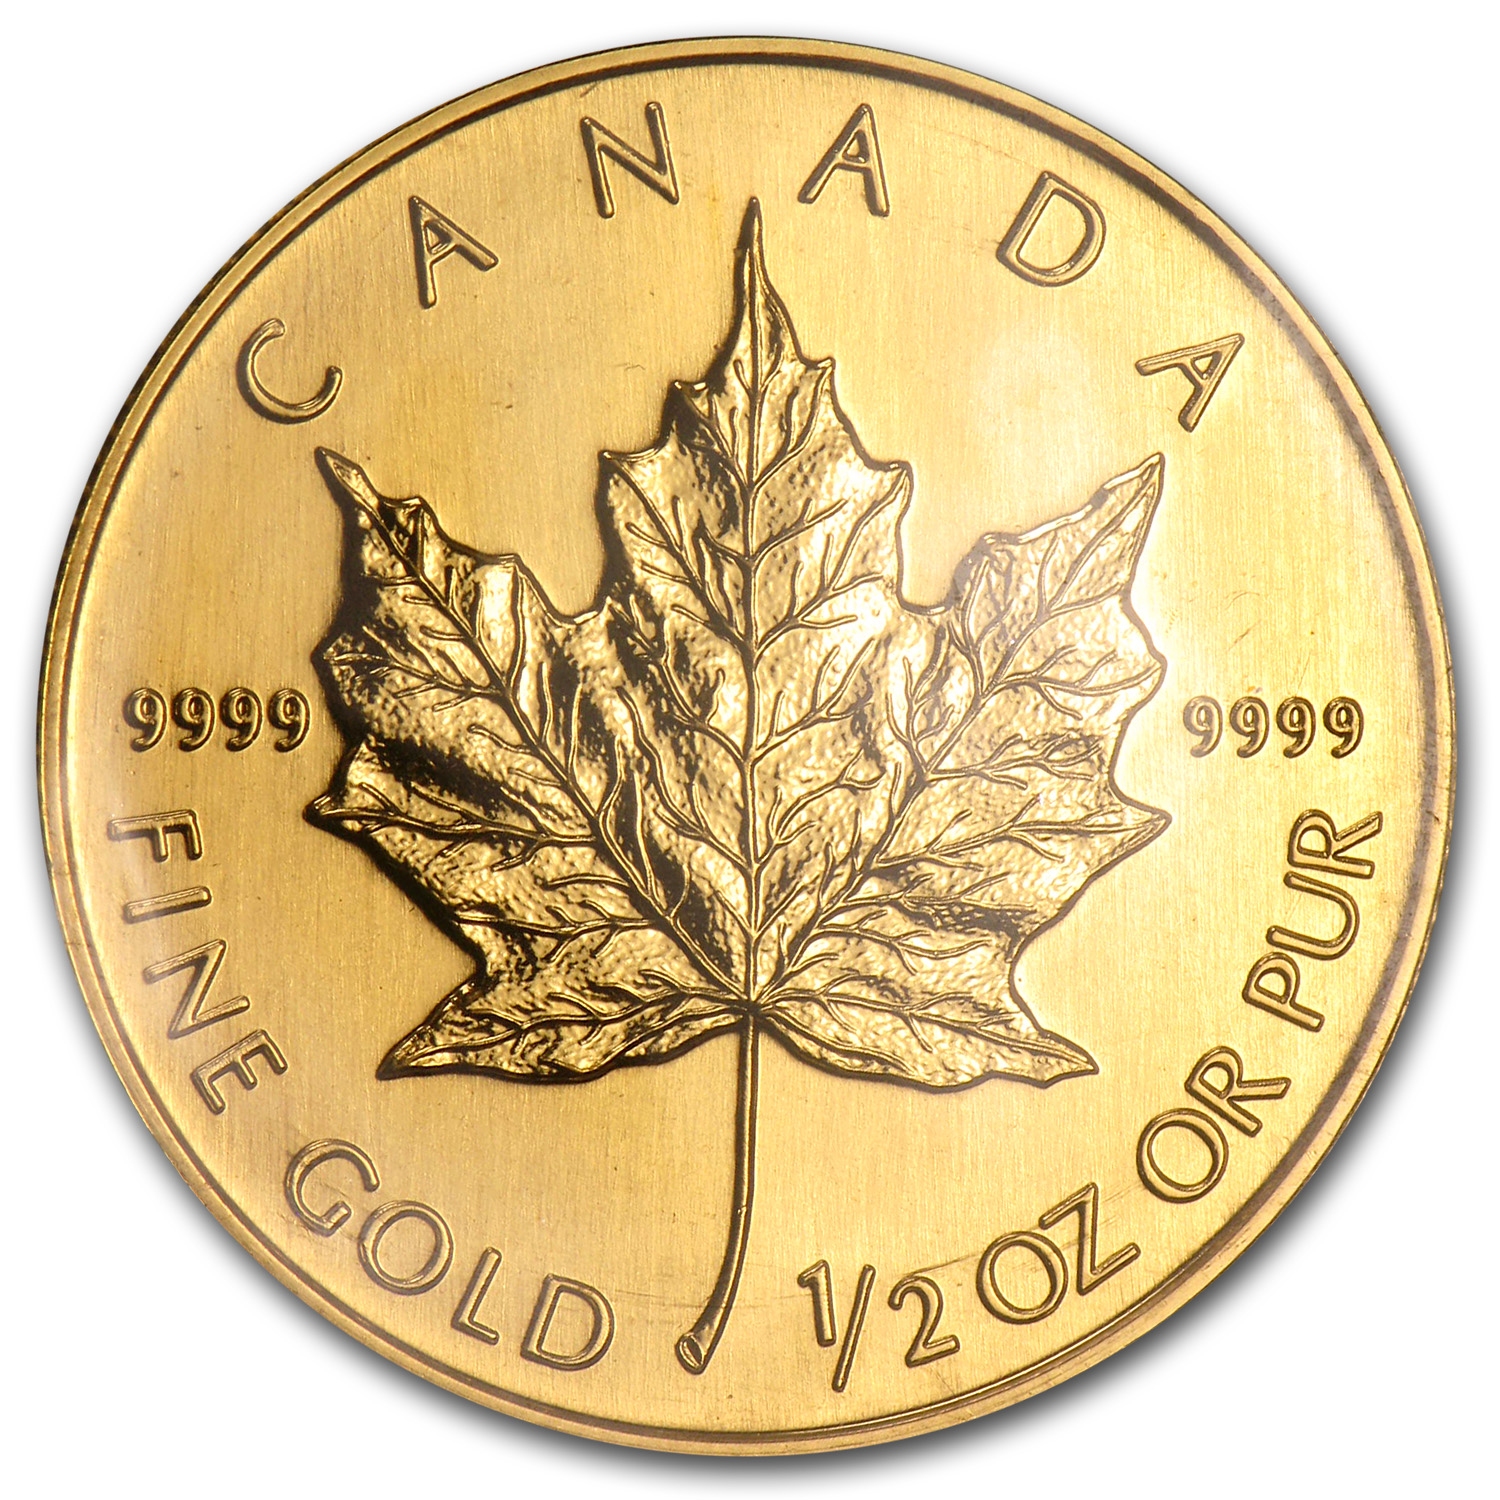 1996 1/2 oz Gold Canadian Maple Leaf